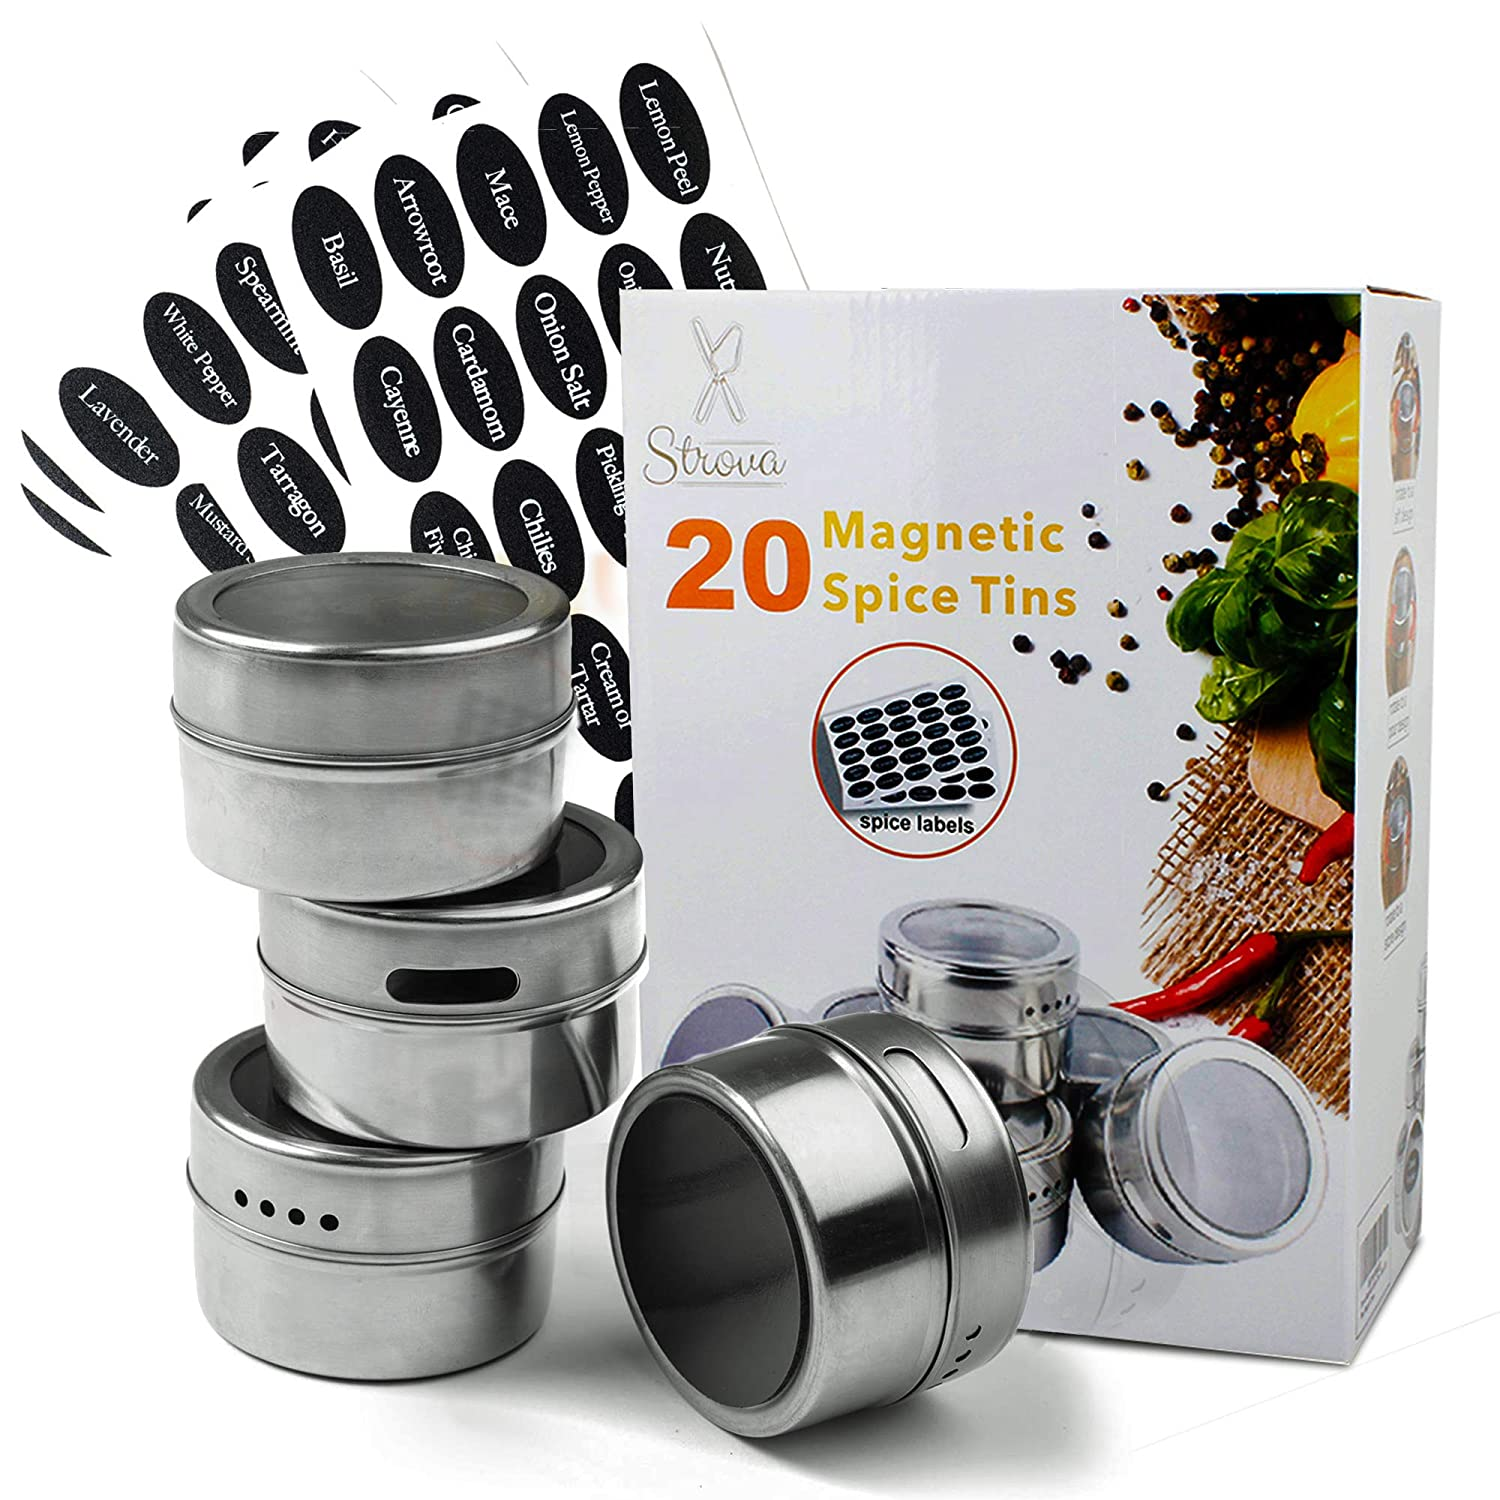 Strova Magnetic Spice Tins (20-Piece Set) Dual-Purpose Sift and Pour Holes | Round, Stainless Steel Cans w/Transparent Shaker Tops | Incl. 150 Pre-Printed Sticker Labels